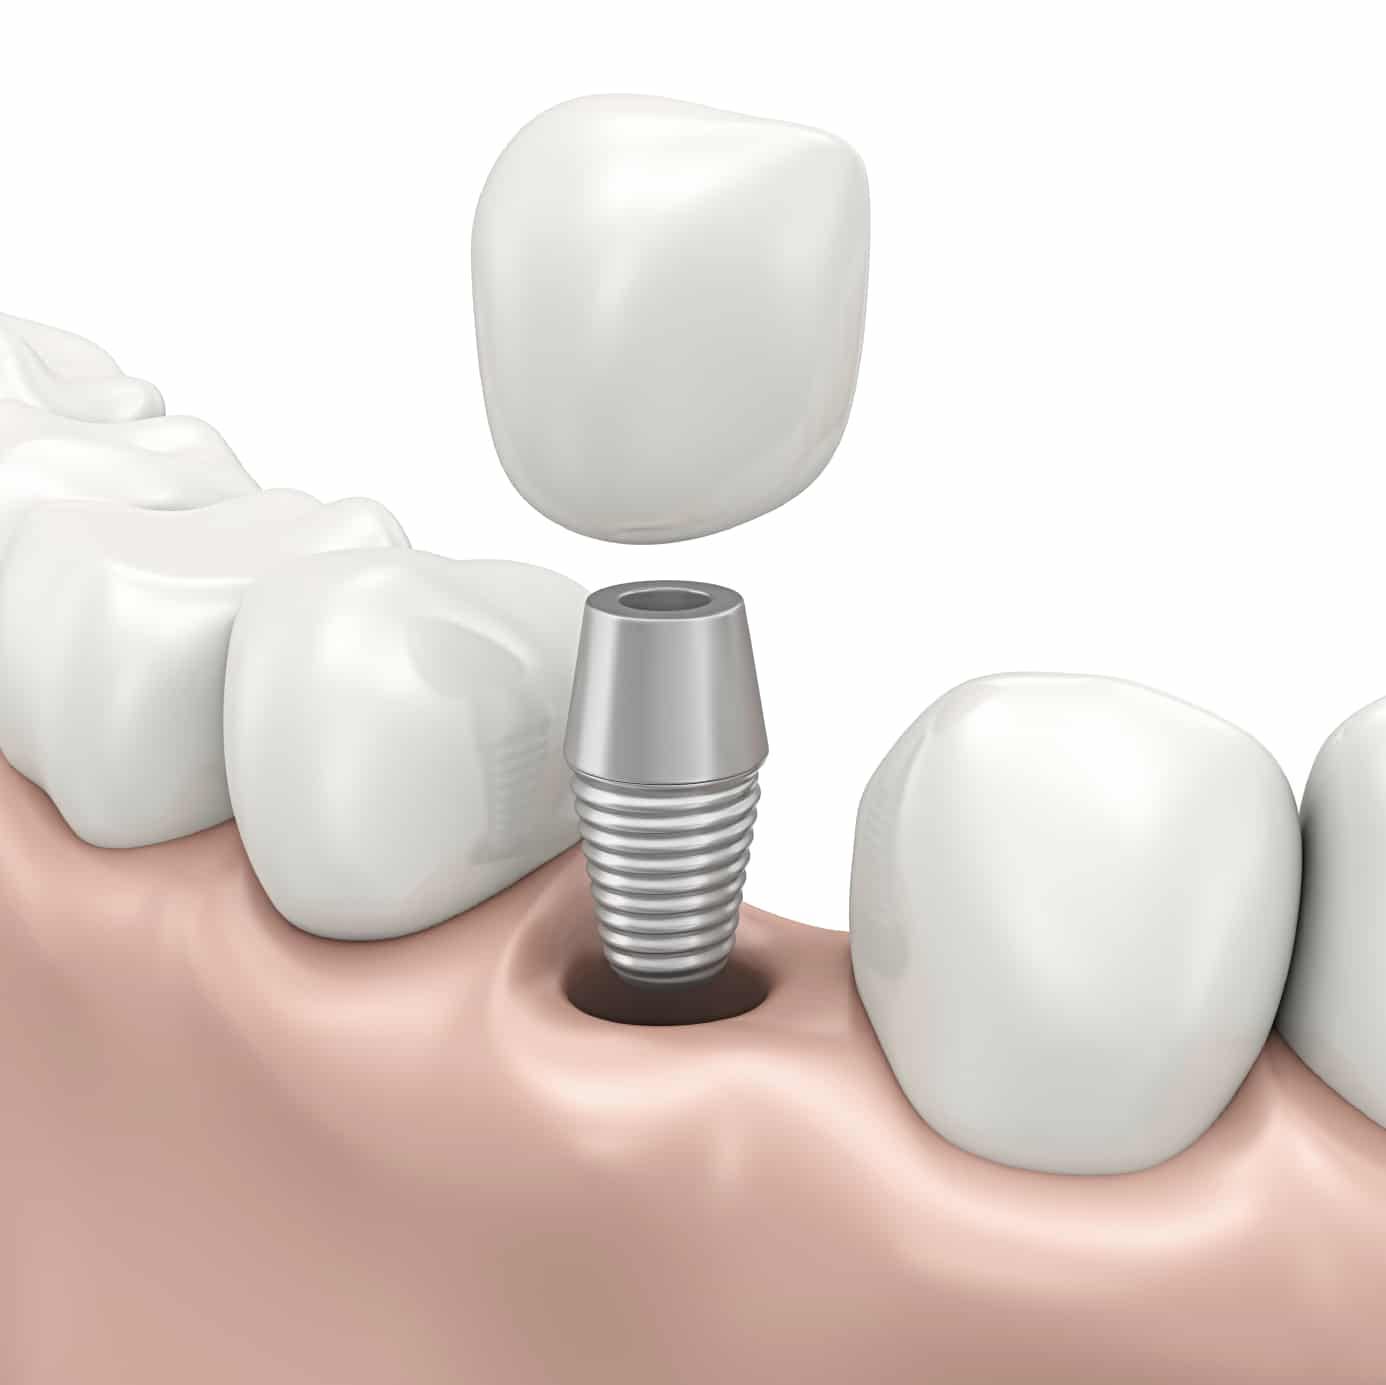 dental implants Affordable dental implant services of grand family dentistry provide same day dental implant services in baton rouge and mandeville areas.